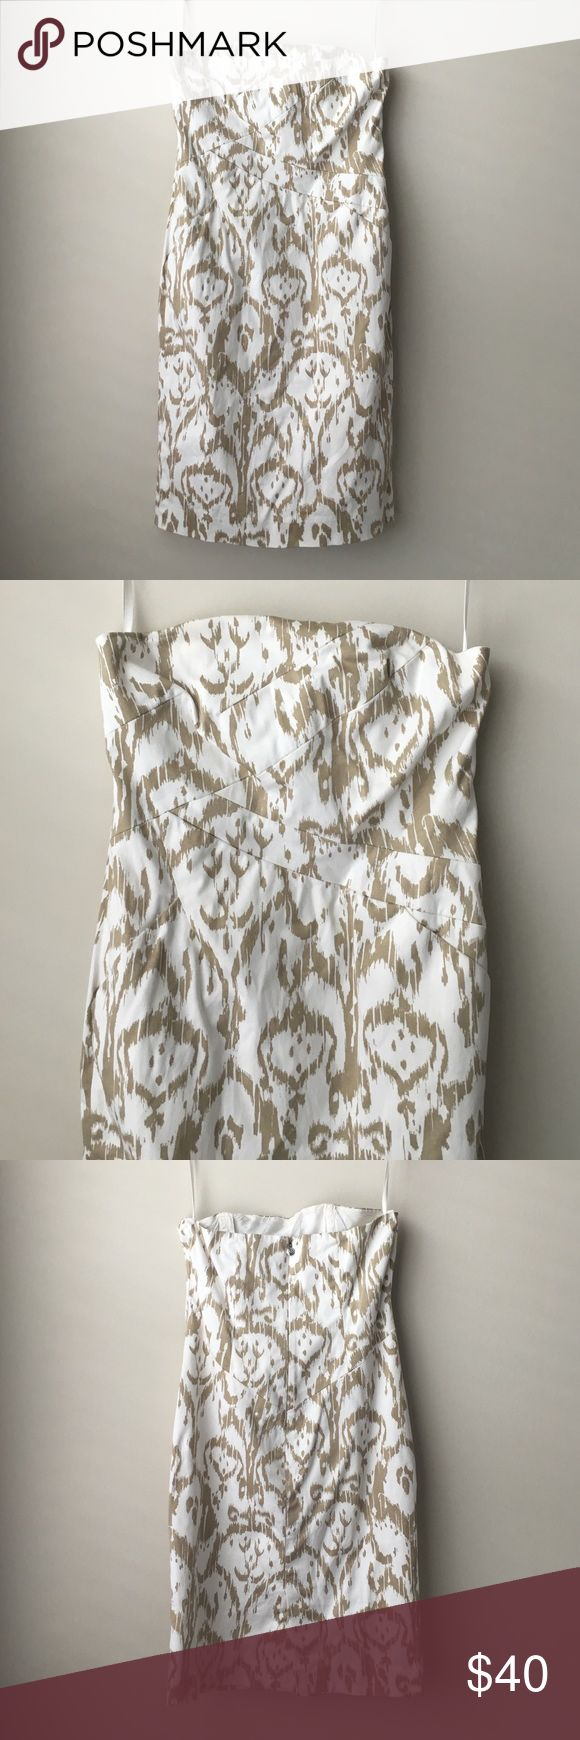 MICHAEL KORS tan white strapless dress Sz 4 MICHAEL KORS tan white strapless dress Sz 4 Michael Kors Dresses Strapless